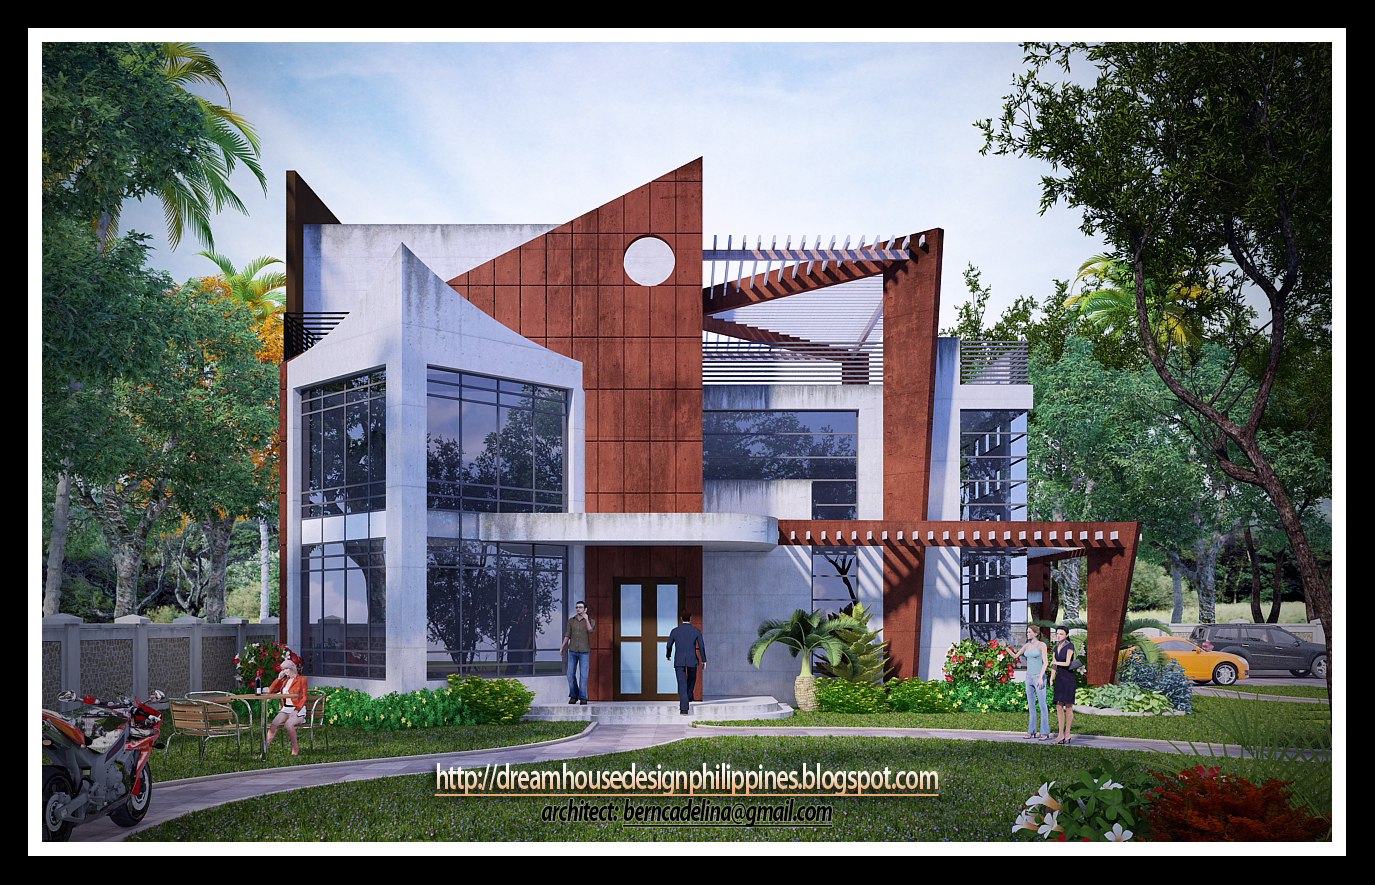 Philippine Dream House Design May 2011